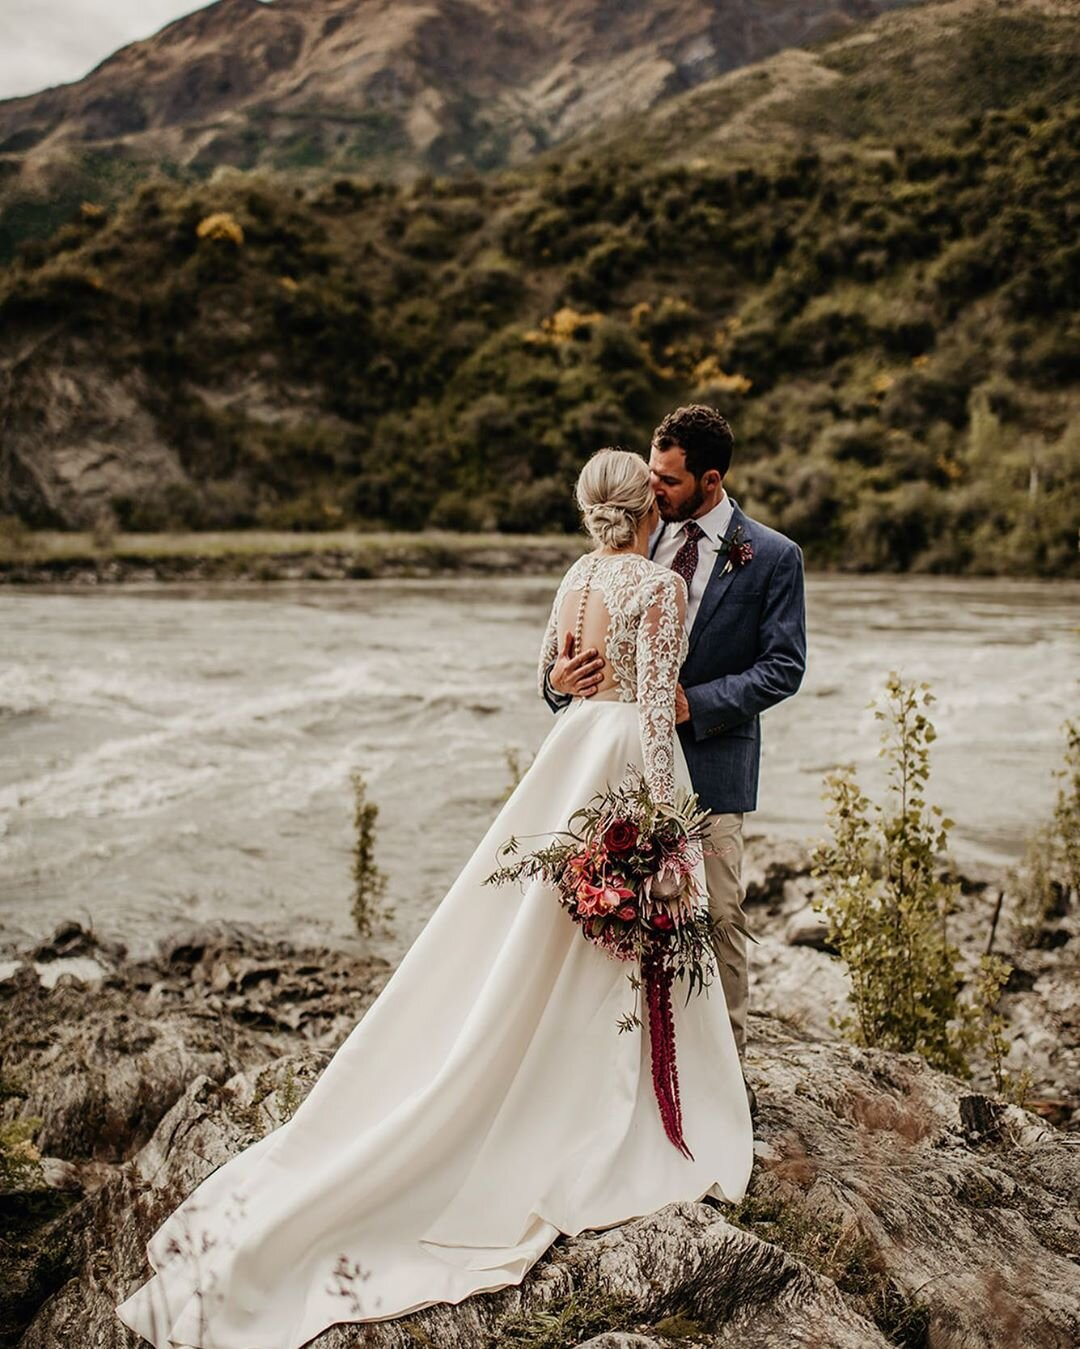 Maori Traditions To Incorporate Into Your New Zealand Wedding